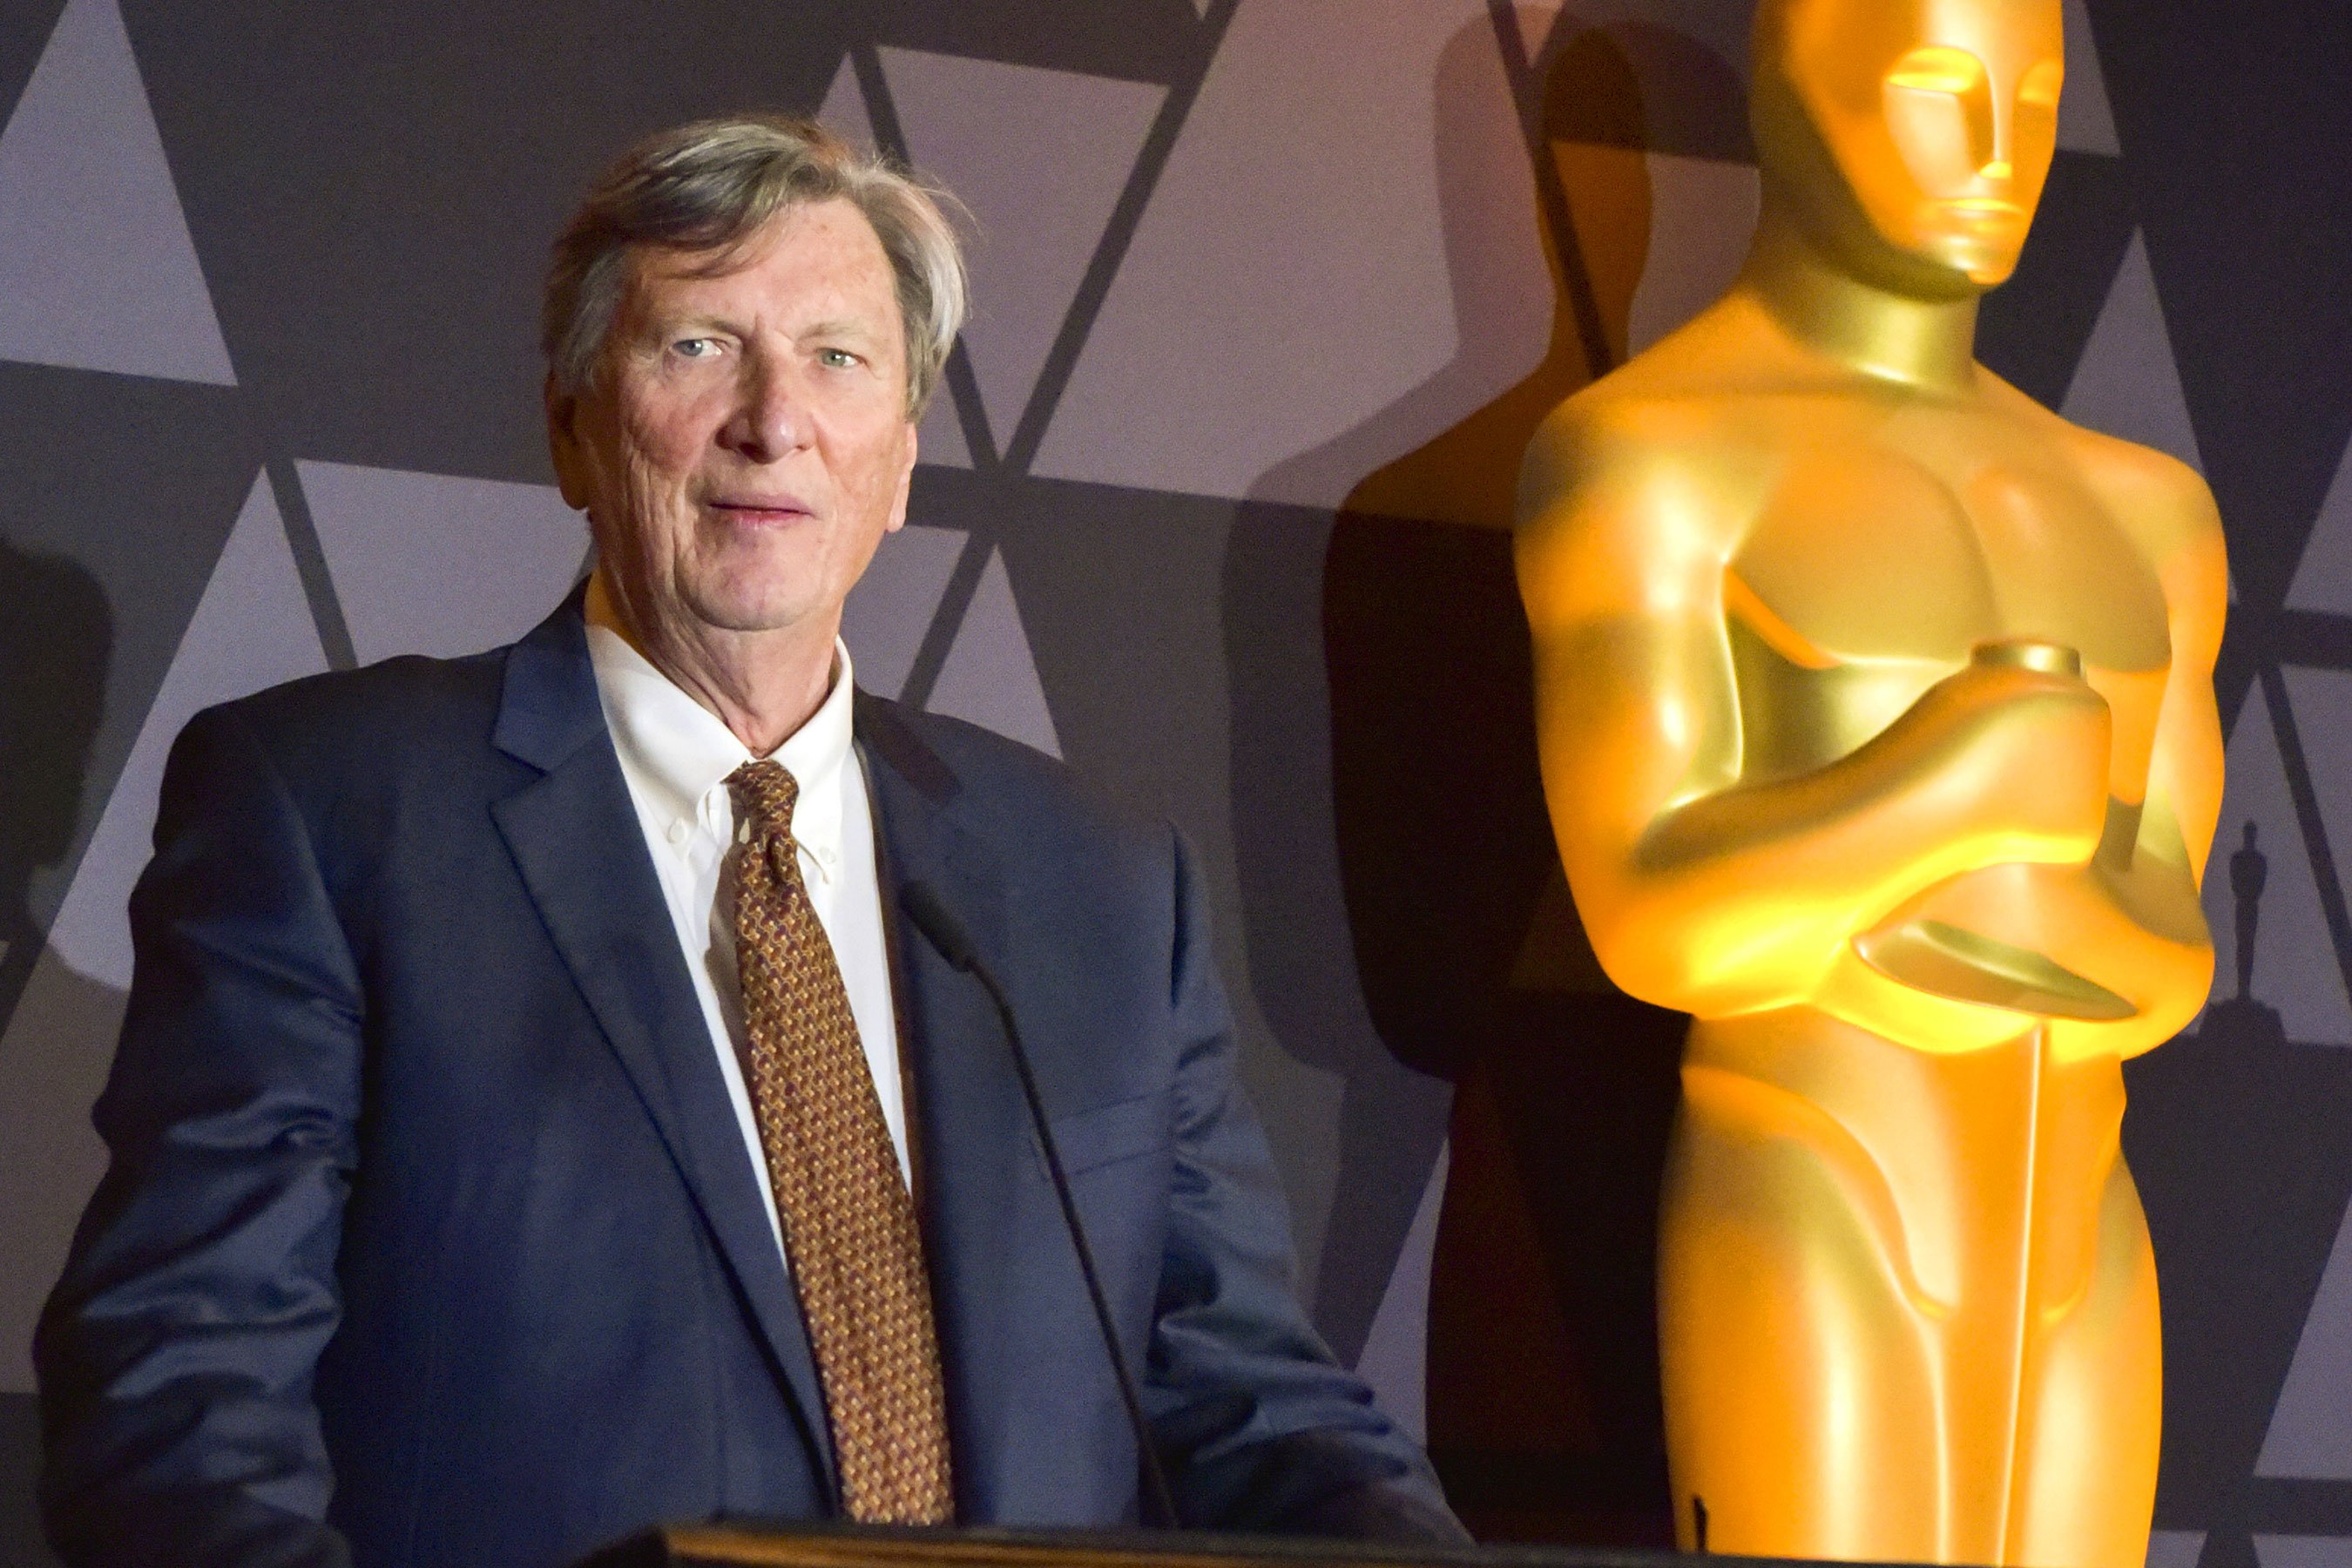 Oscars president under investigation for sexual harassment: reports